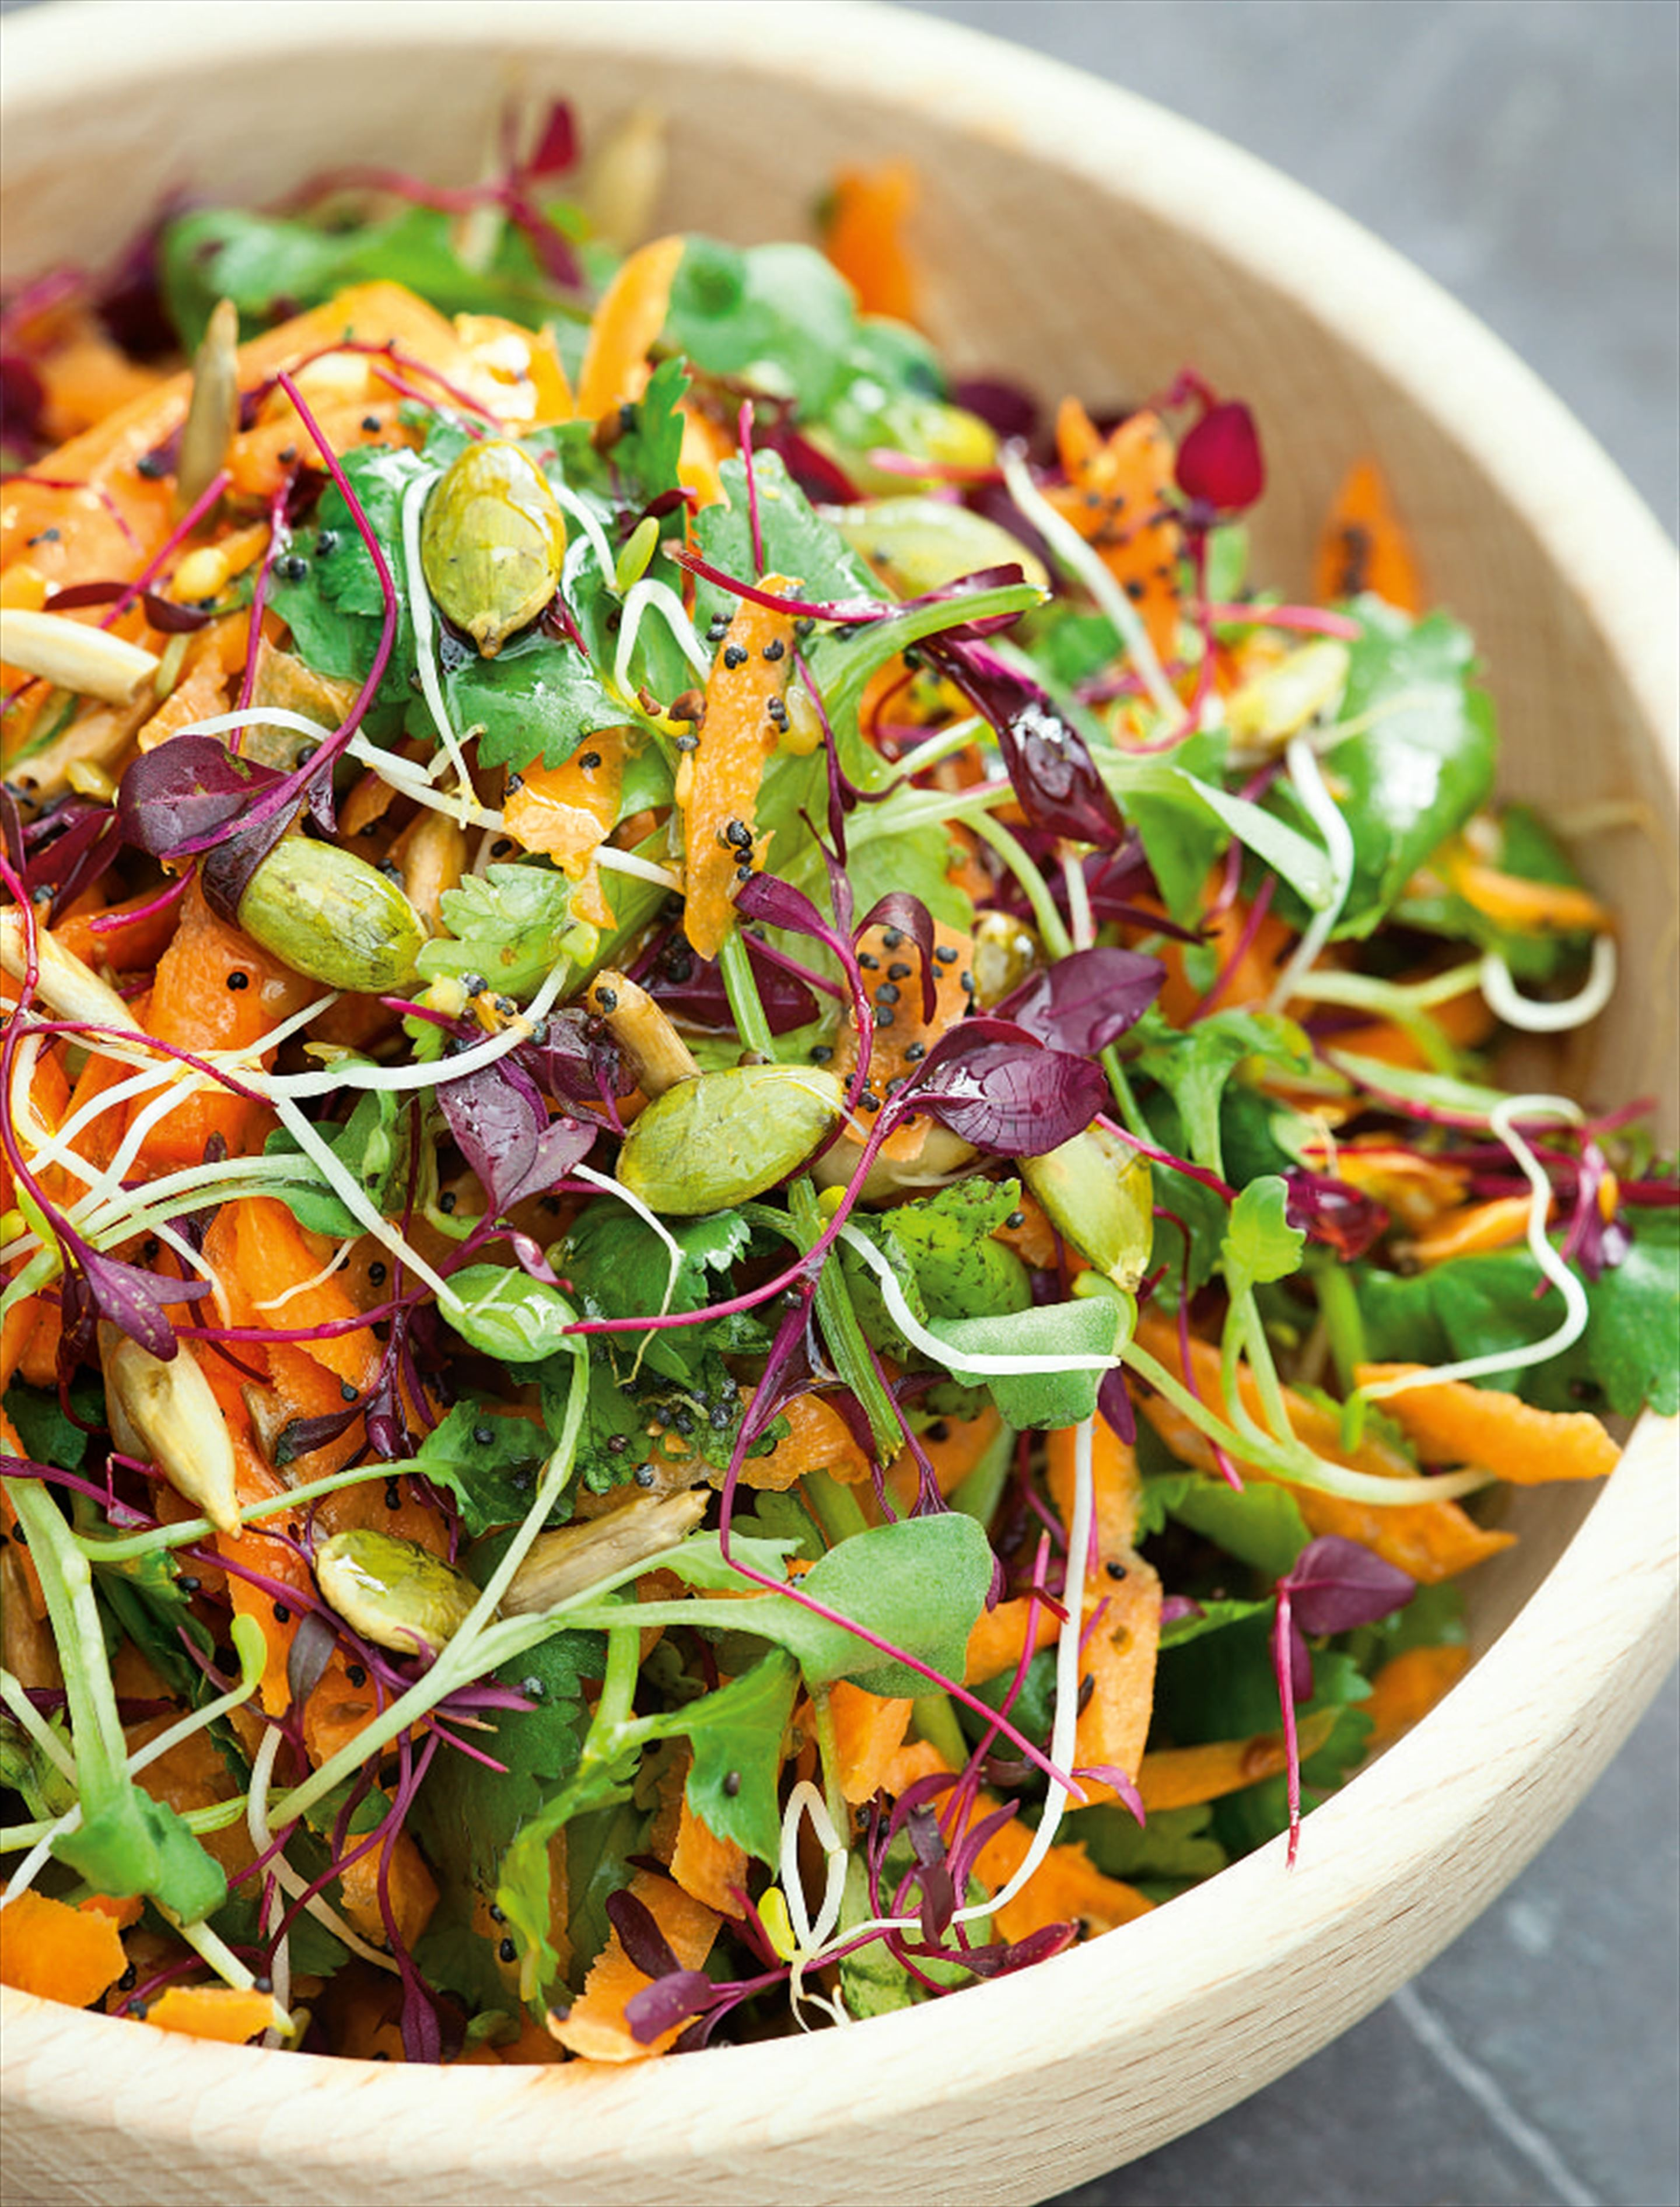 Carrot and sprouted alfalfa/broccoli salad